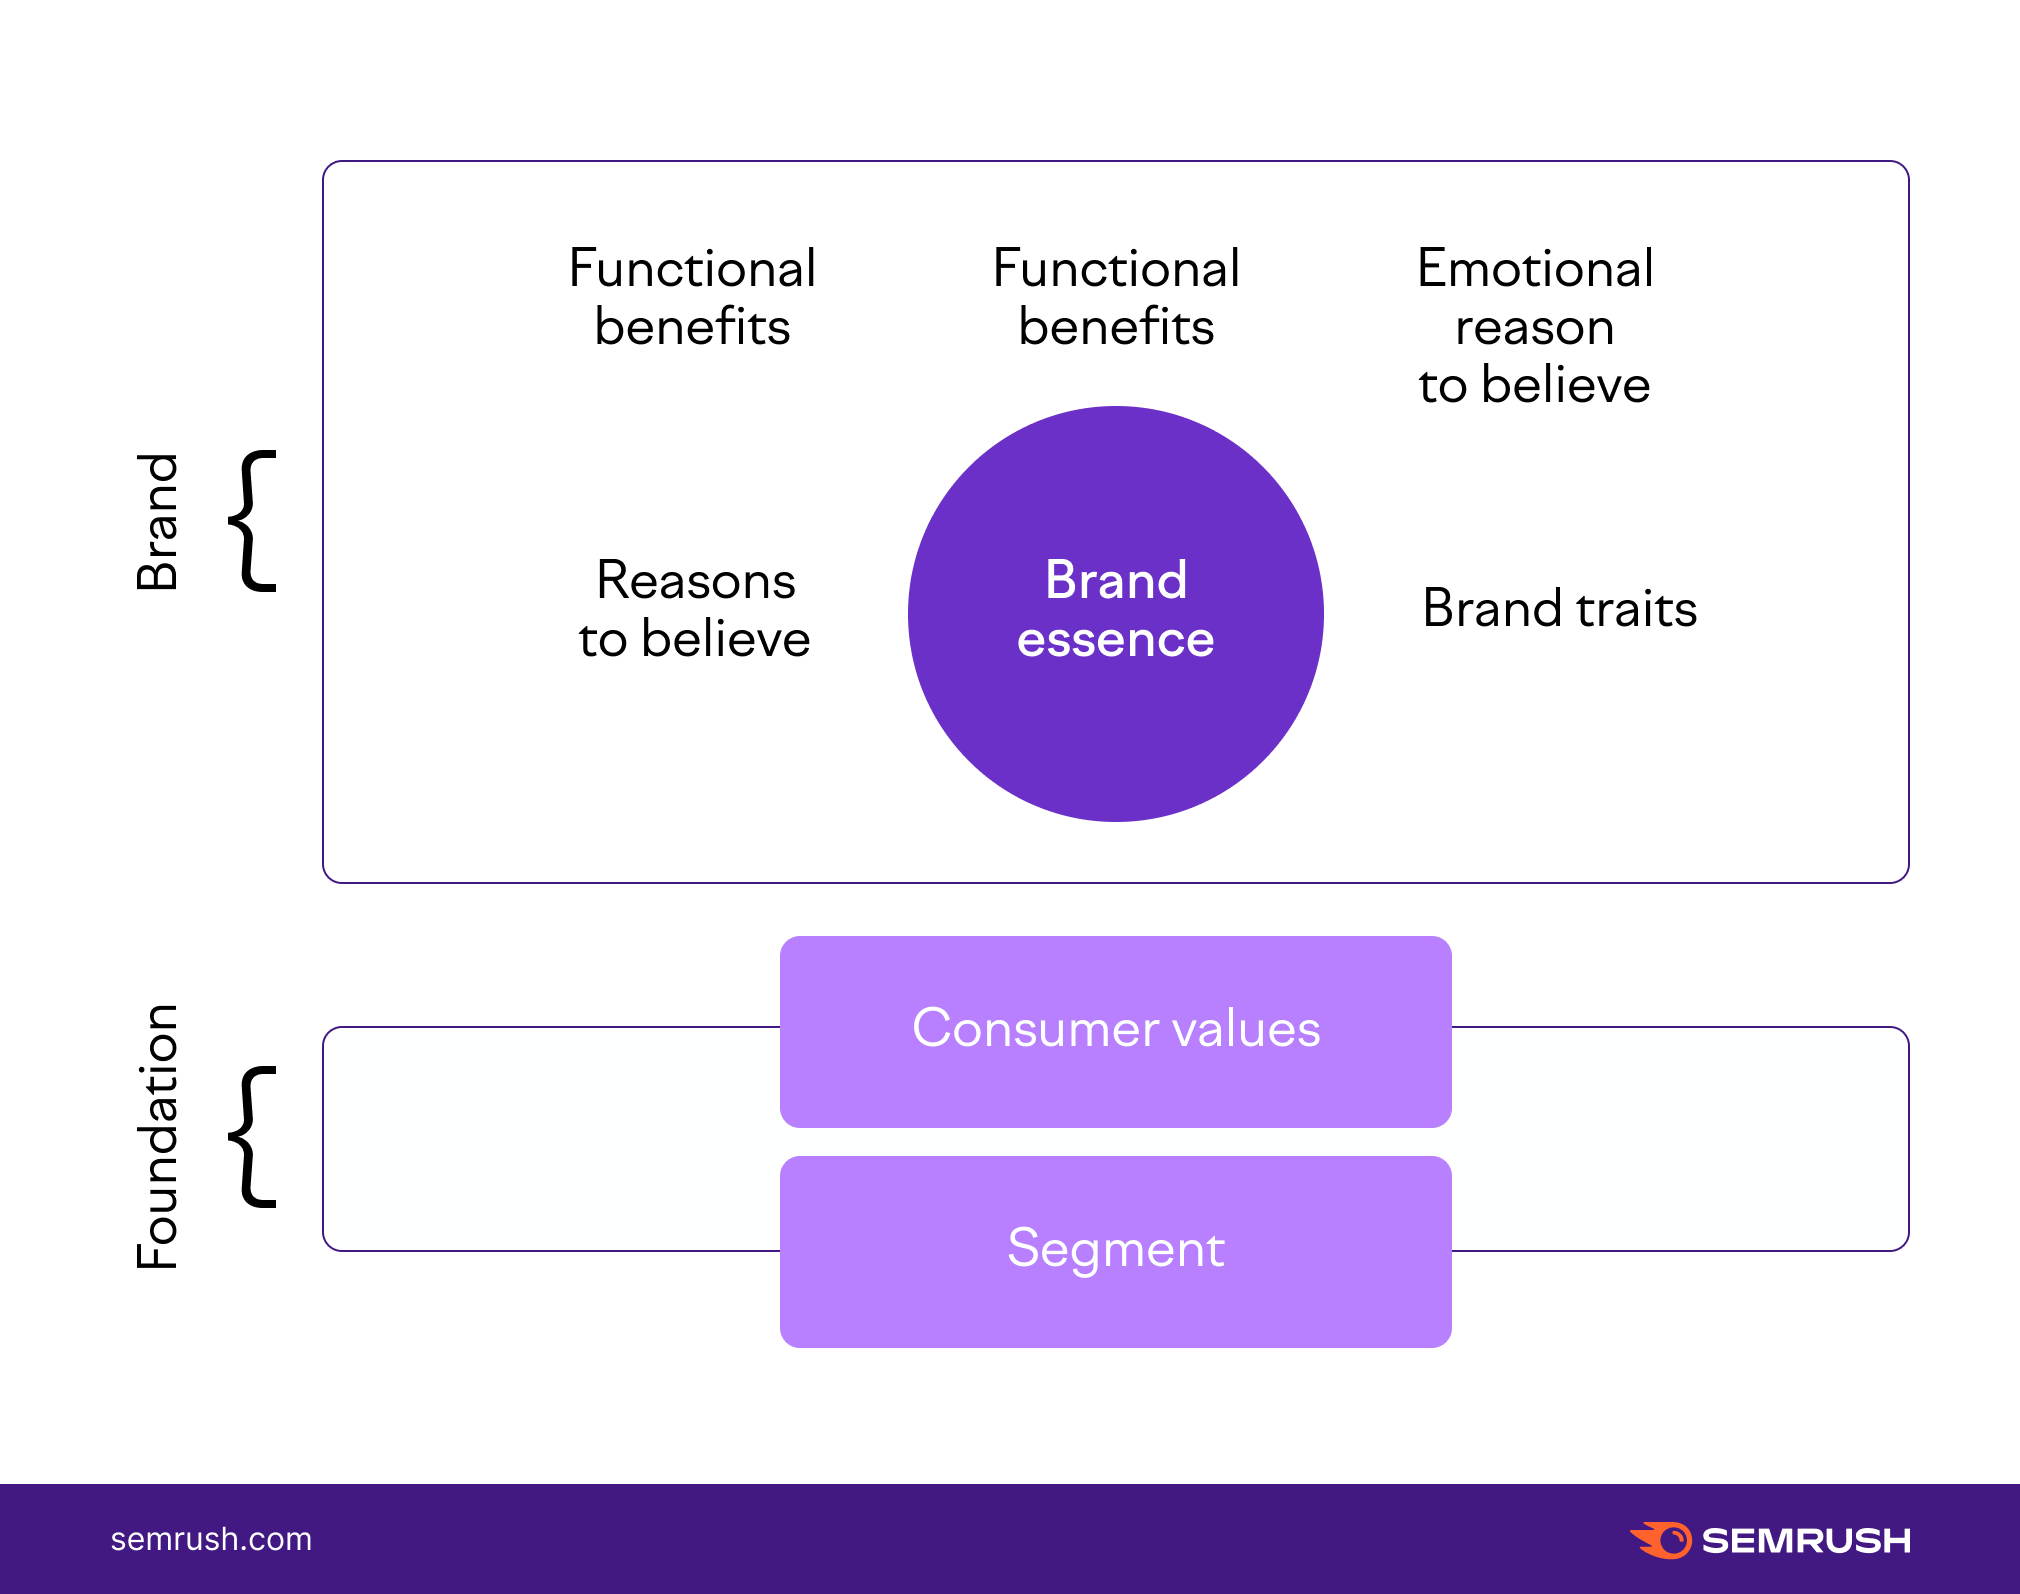 Template for defining a Brand essence